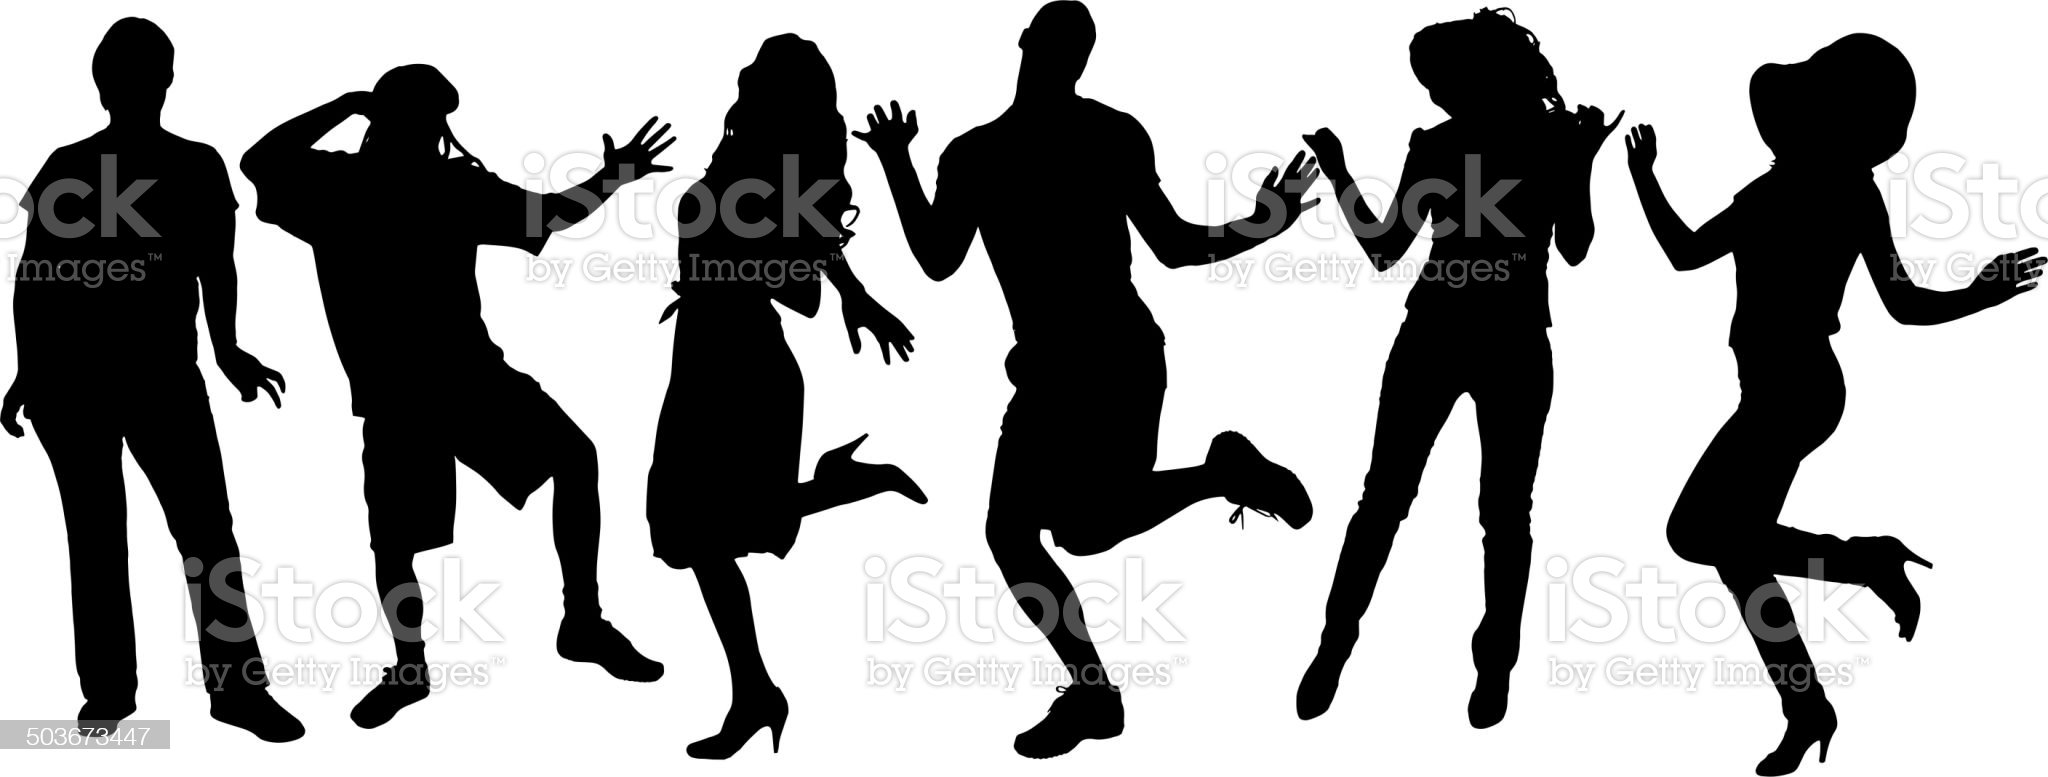 Vector silhouette of a people. royalty-free stock vector art